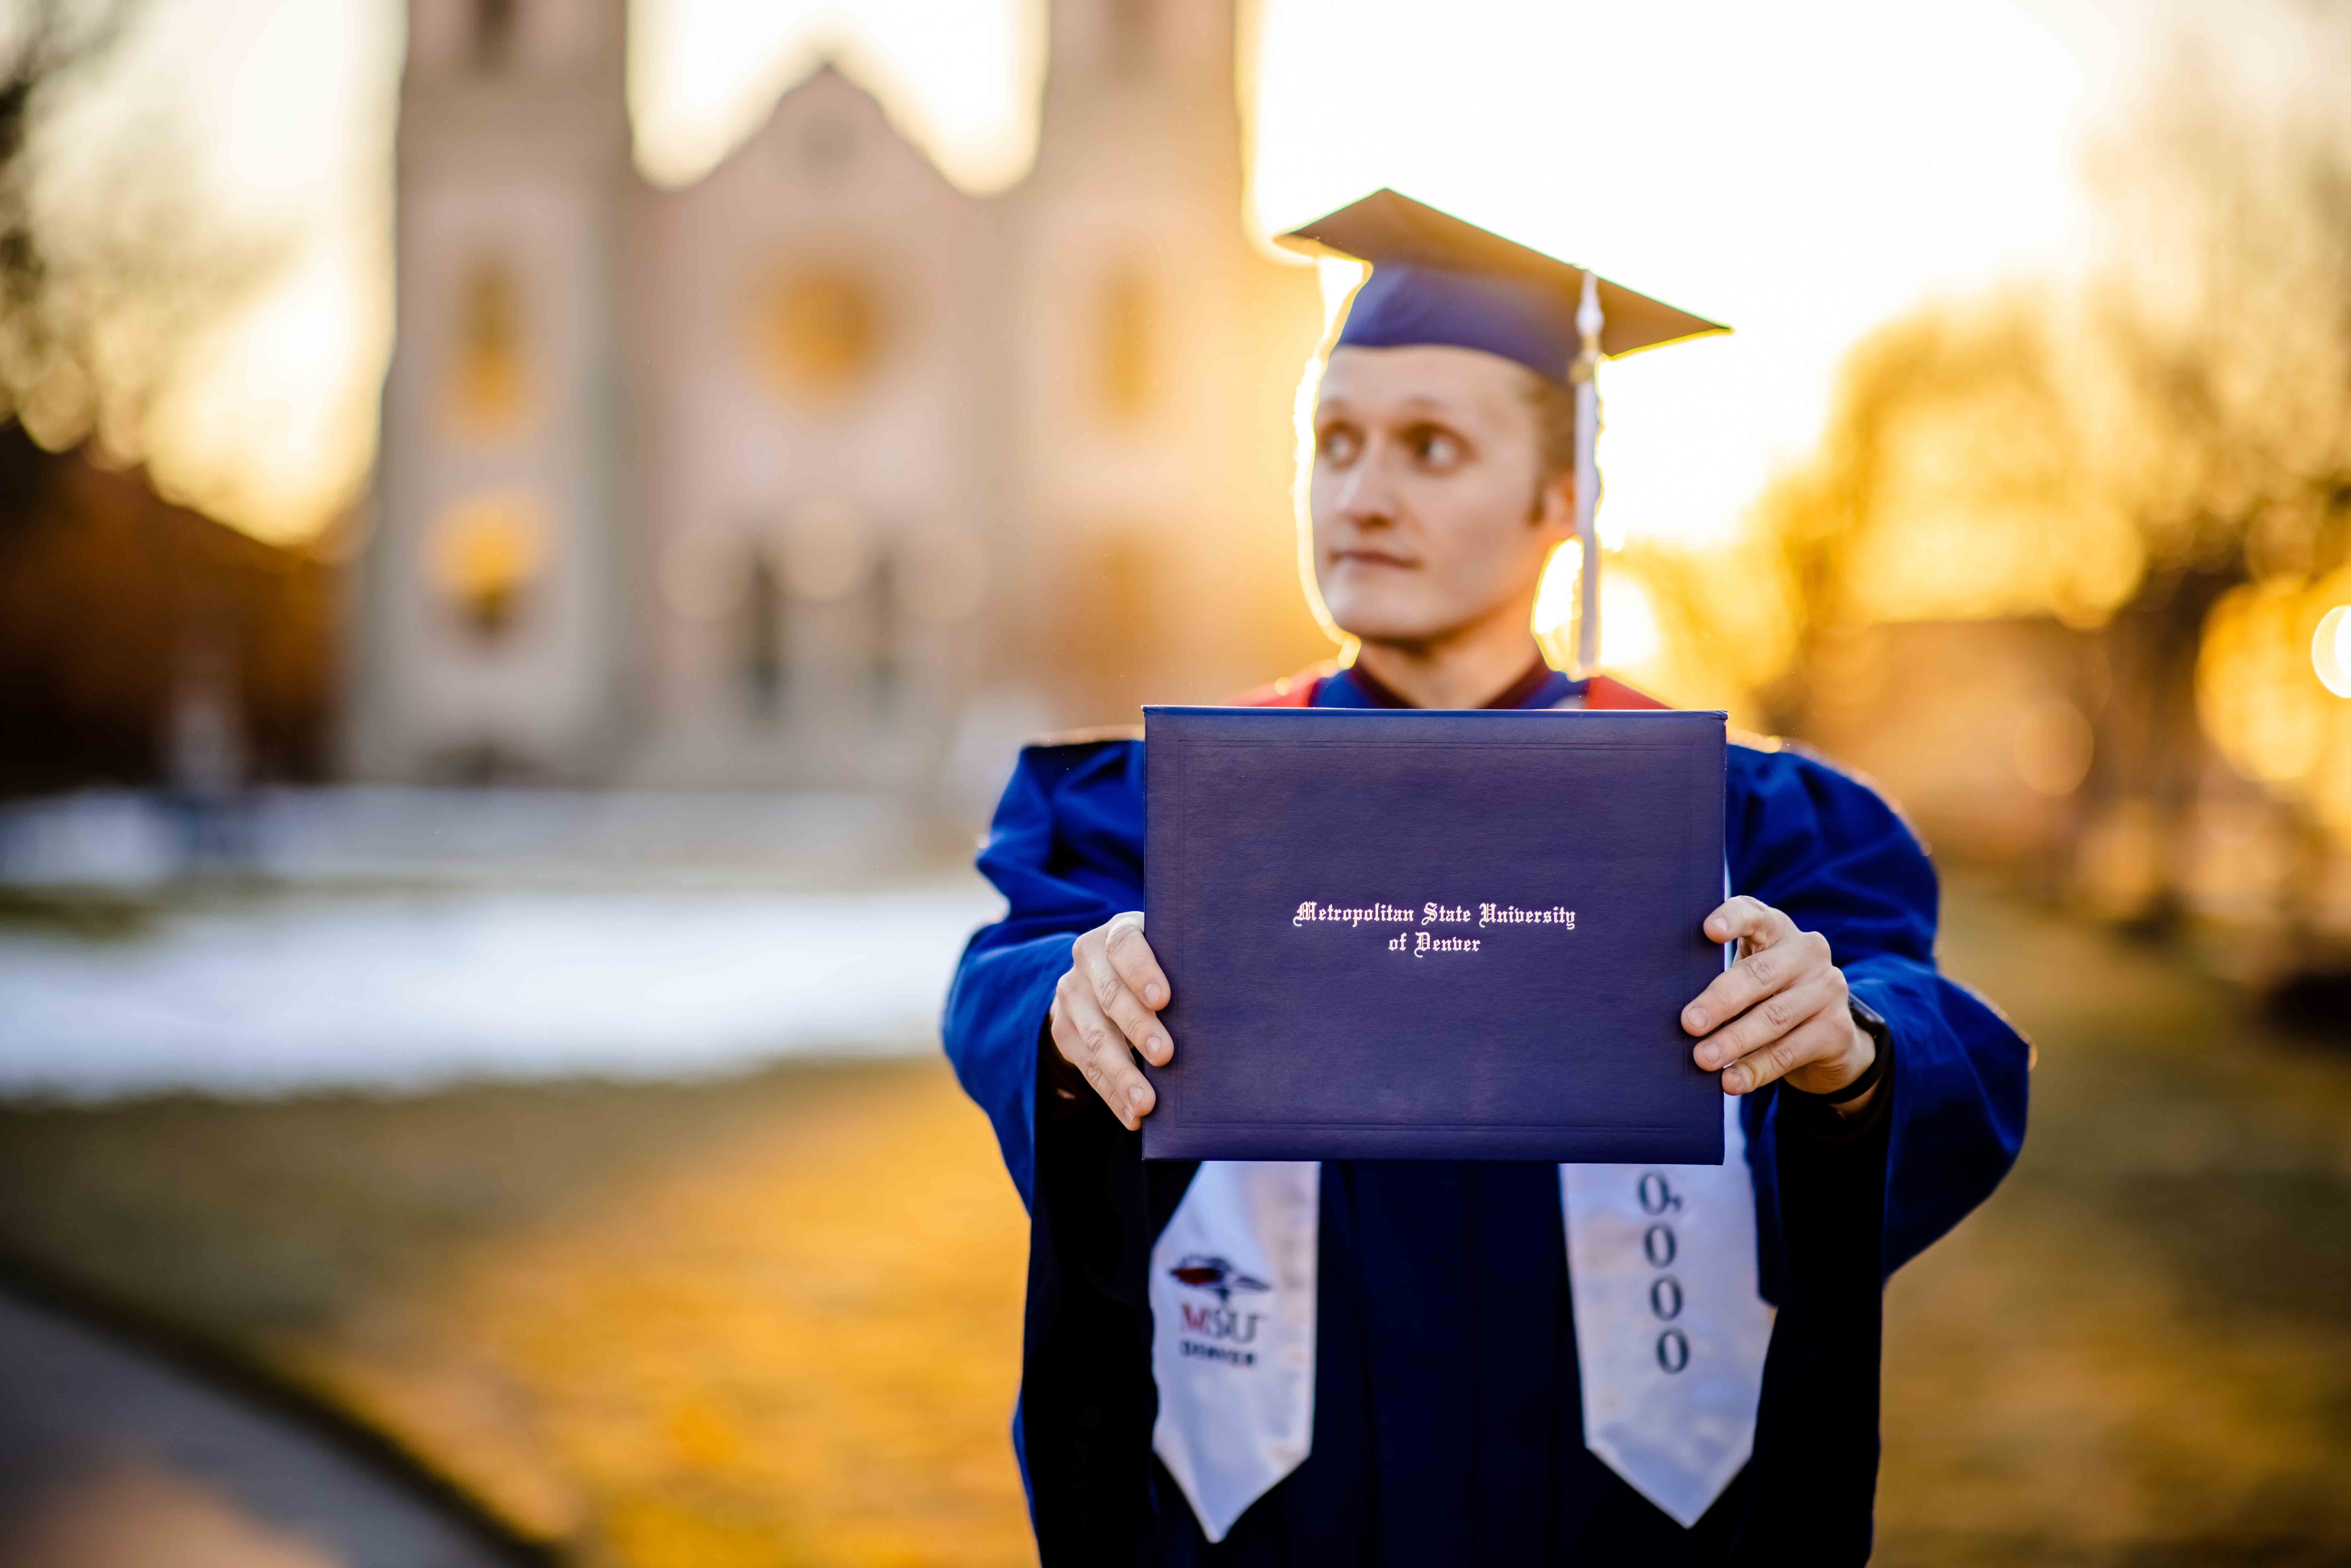 Branden Ingersoll with his diploma cover